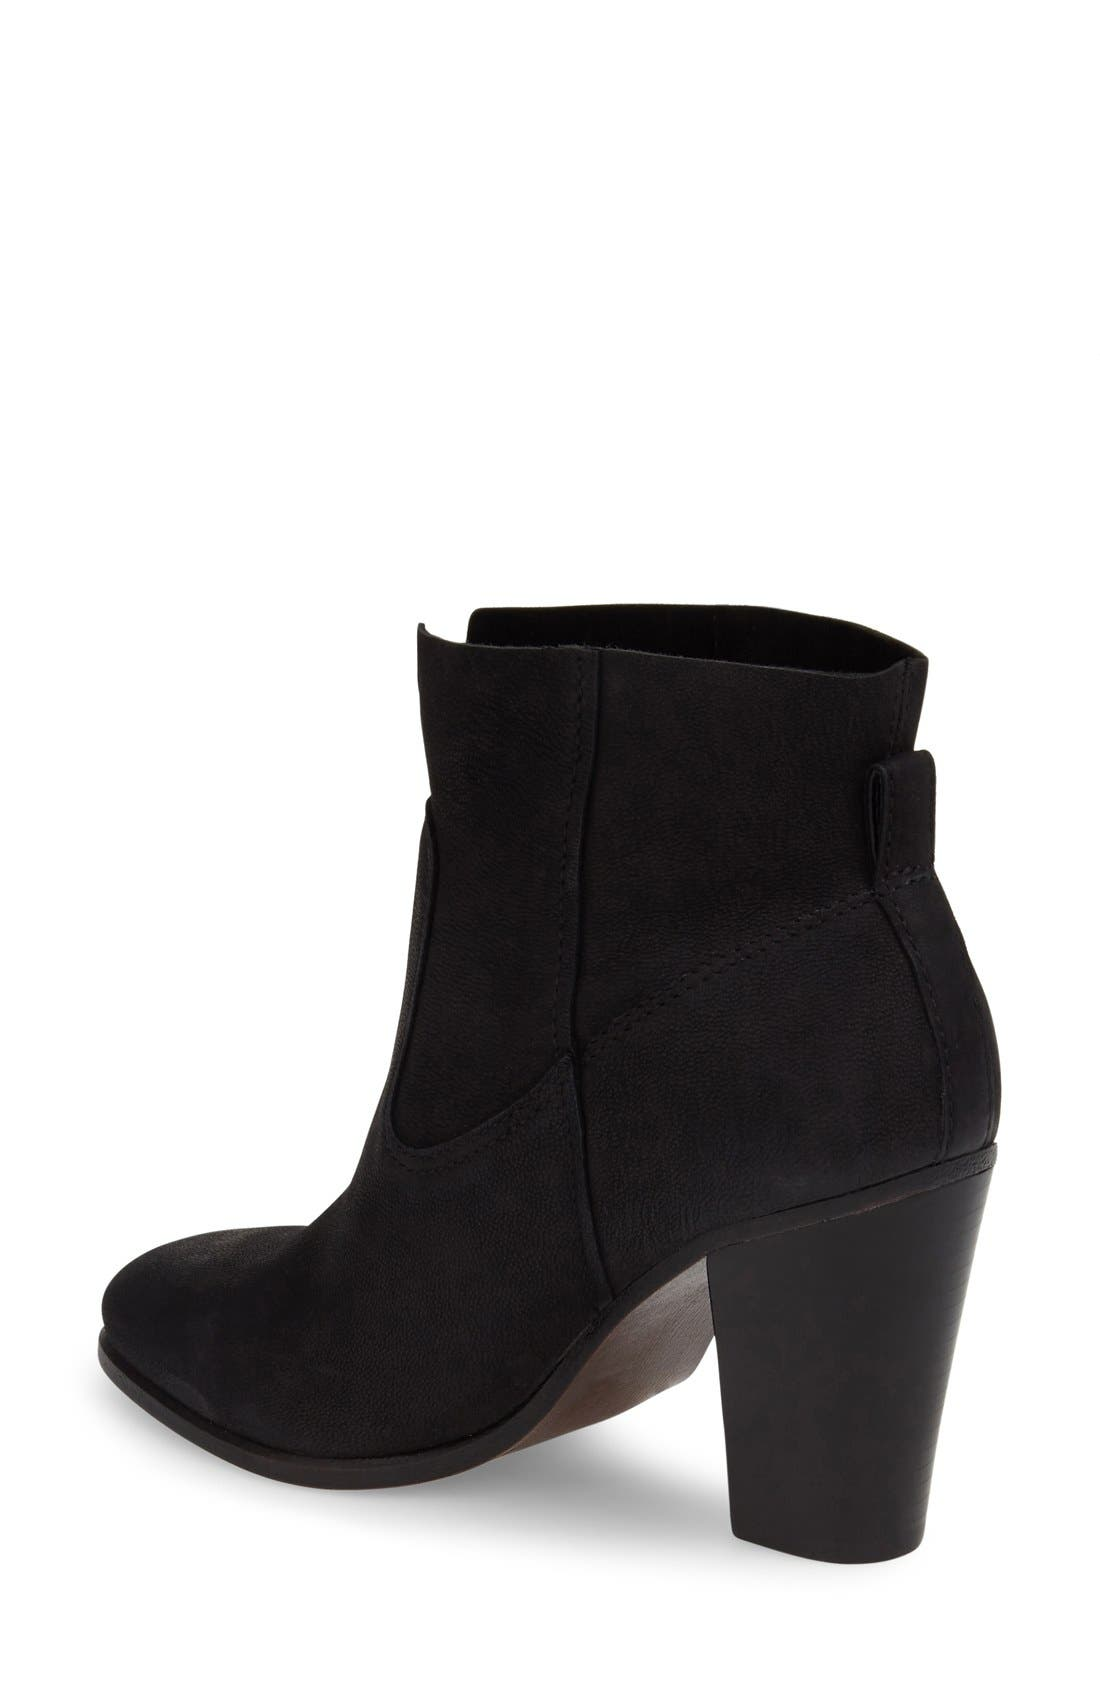 VINCE CAMUTO,                             'Feina' Bootie,                             Alternate thumbnail 2, color,                             001